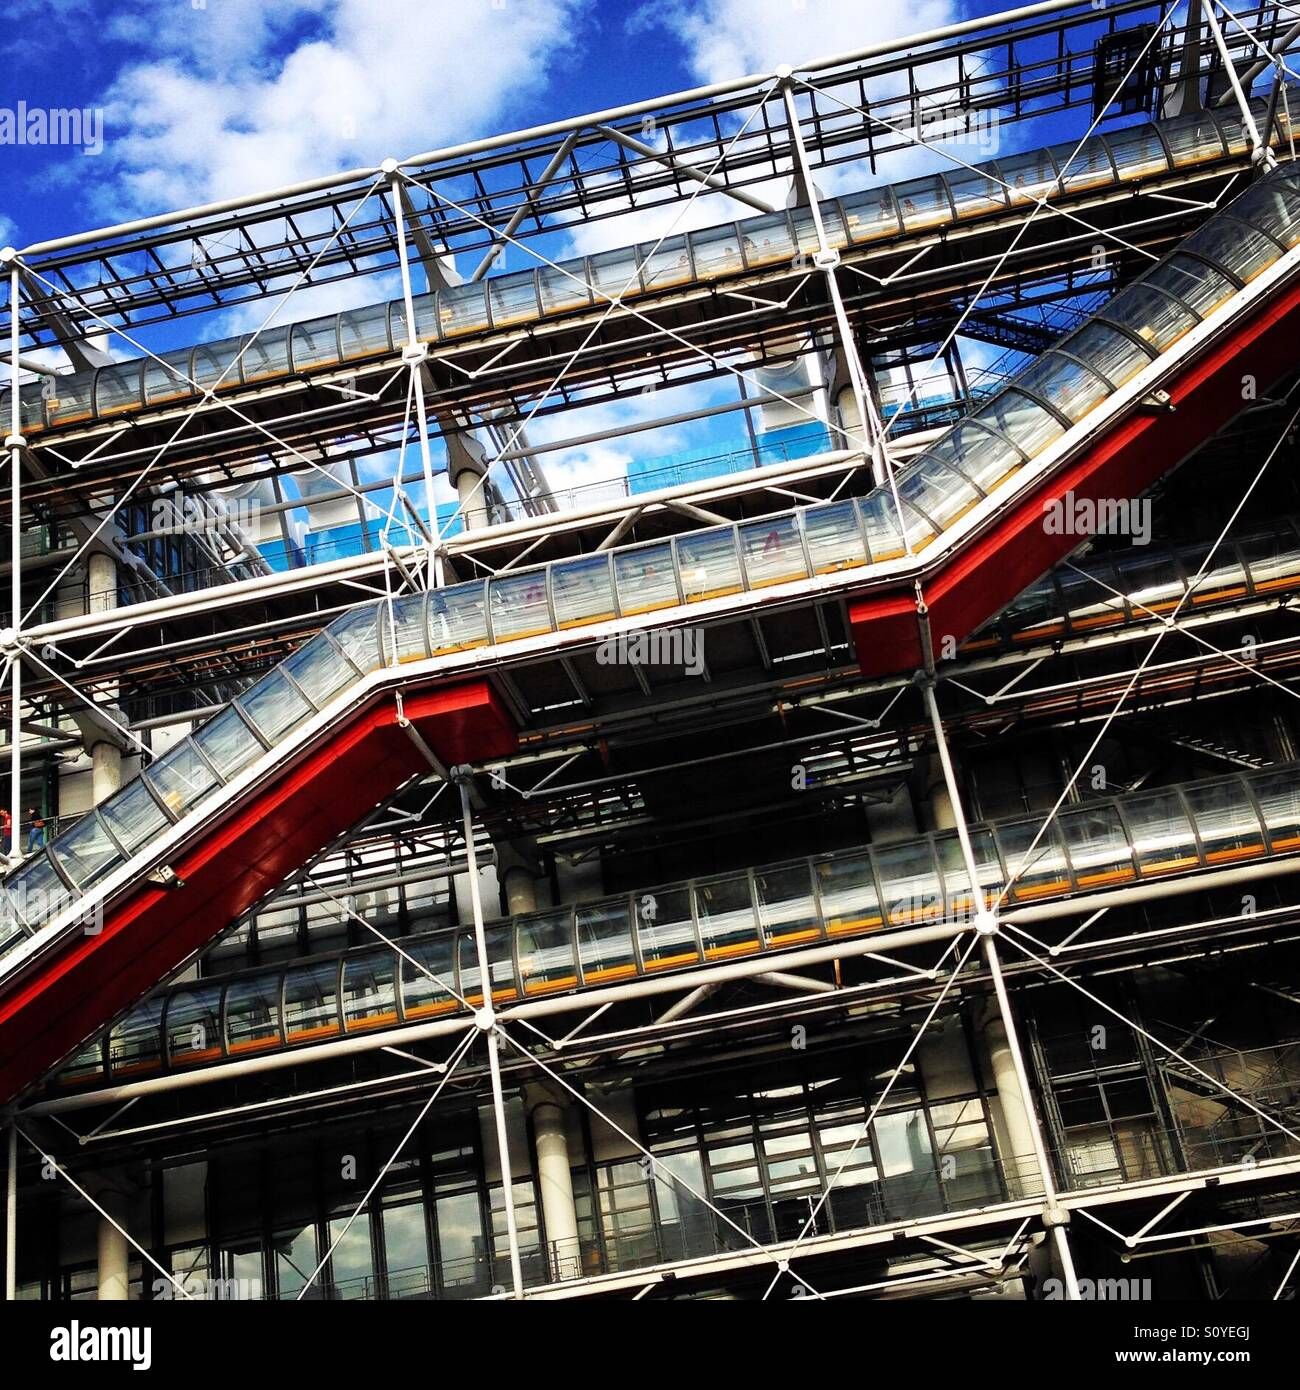 The Pompidou centre structure - Stock Image